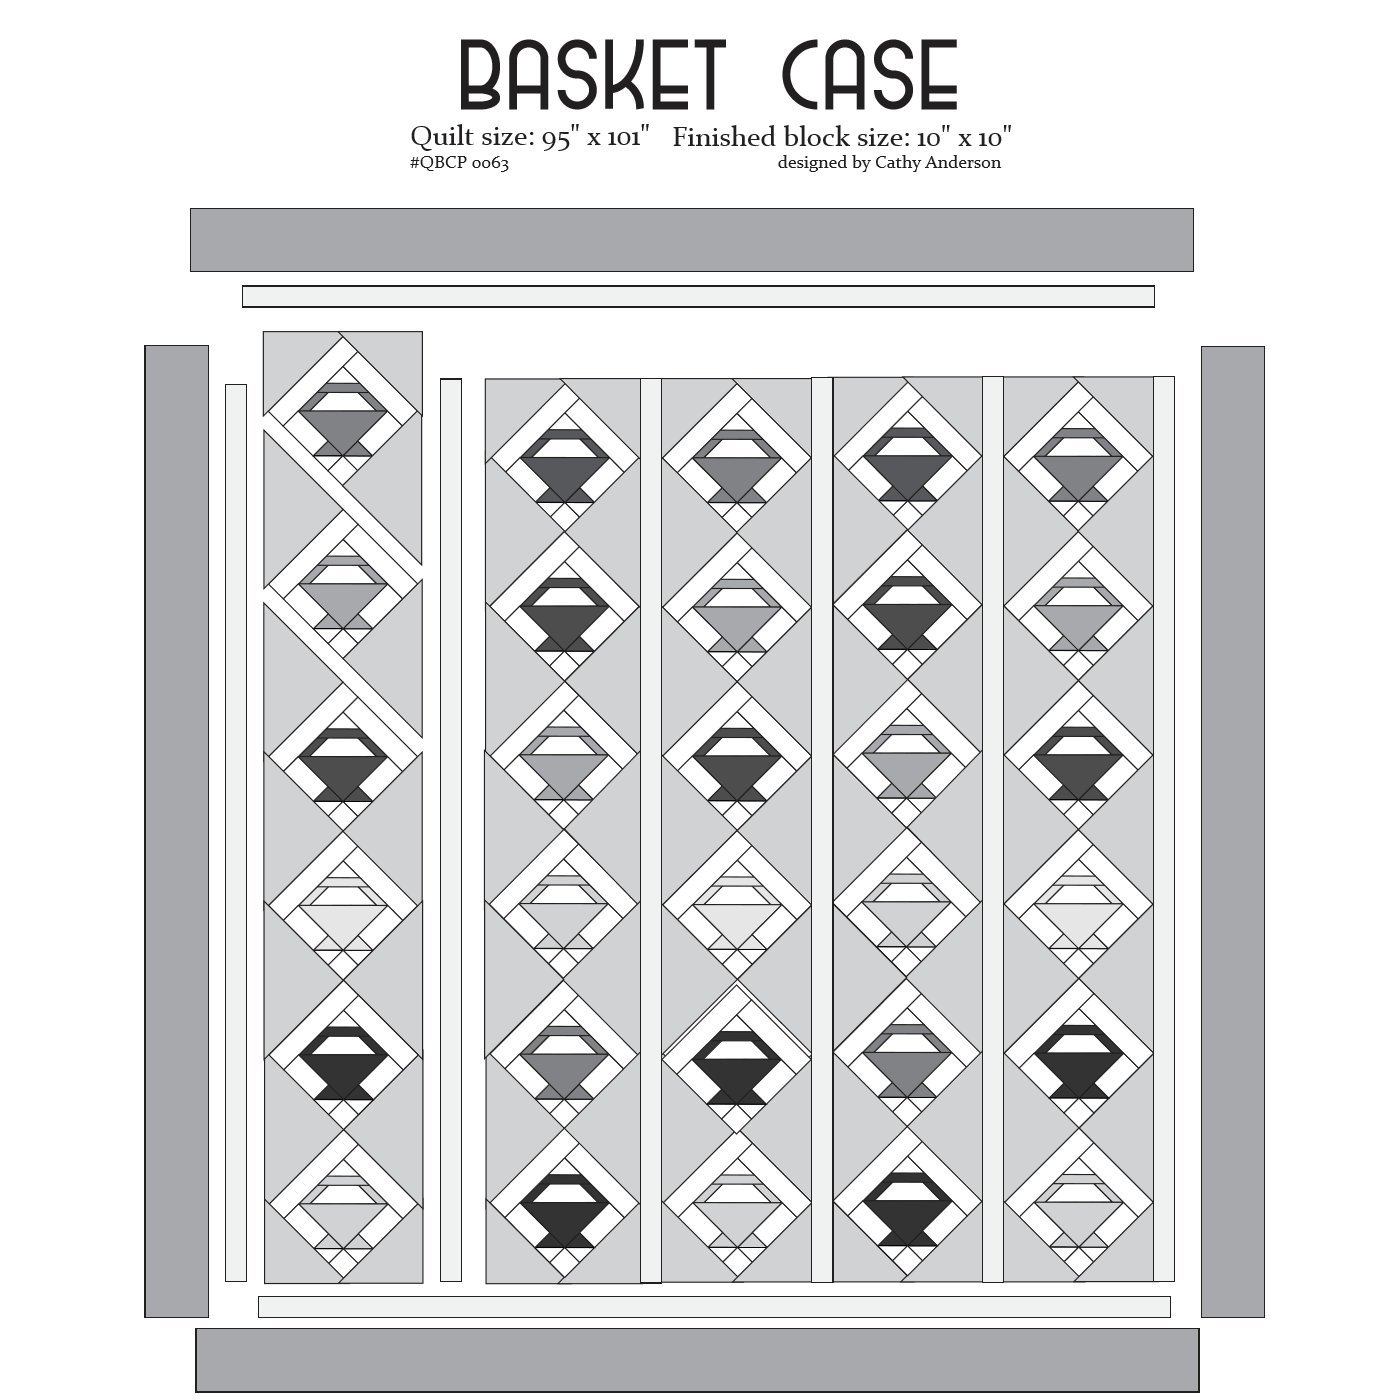 Cutie Pattern Basket Case QBCP-0063